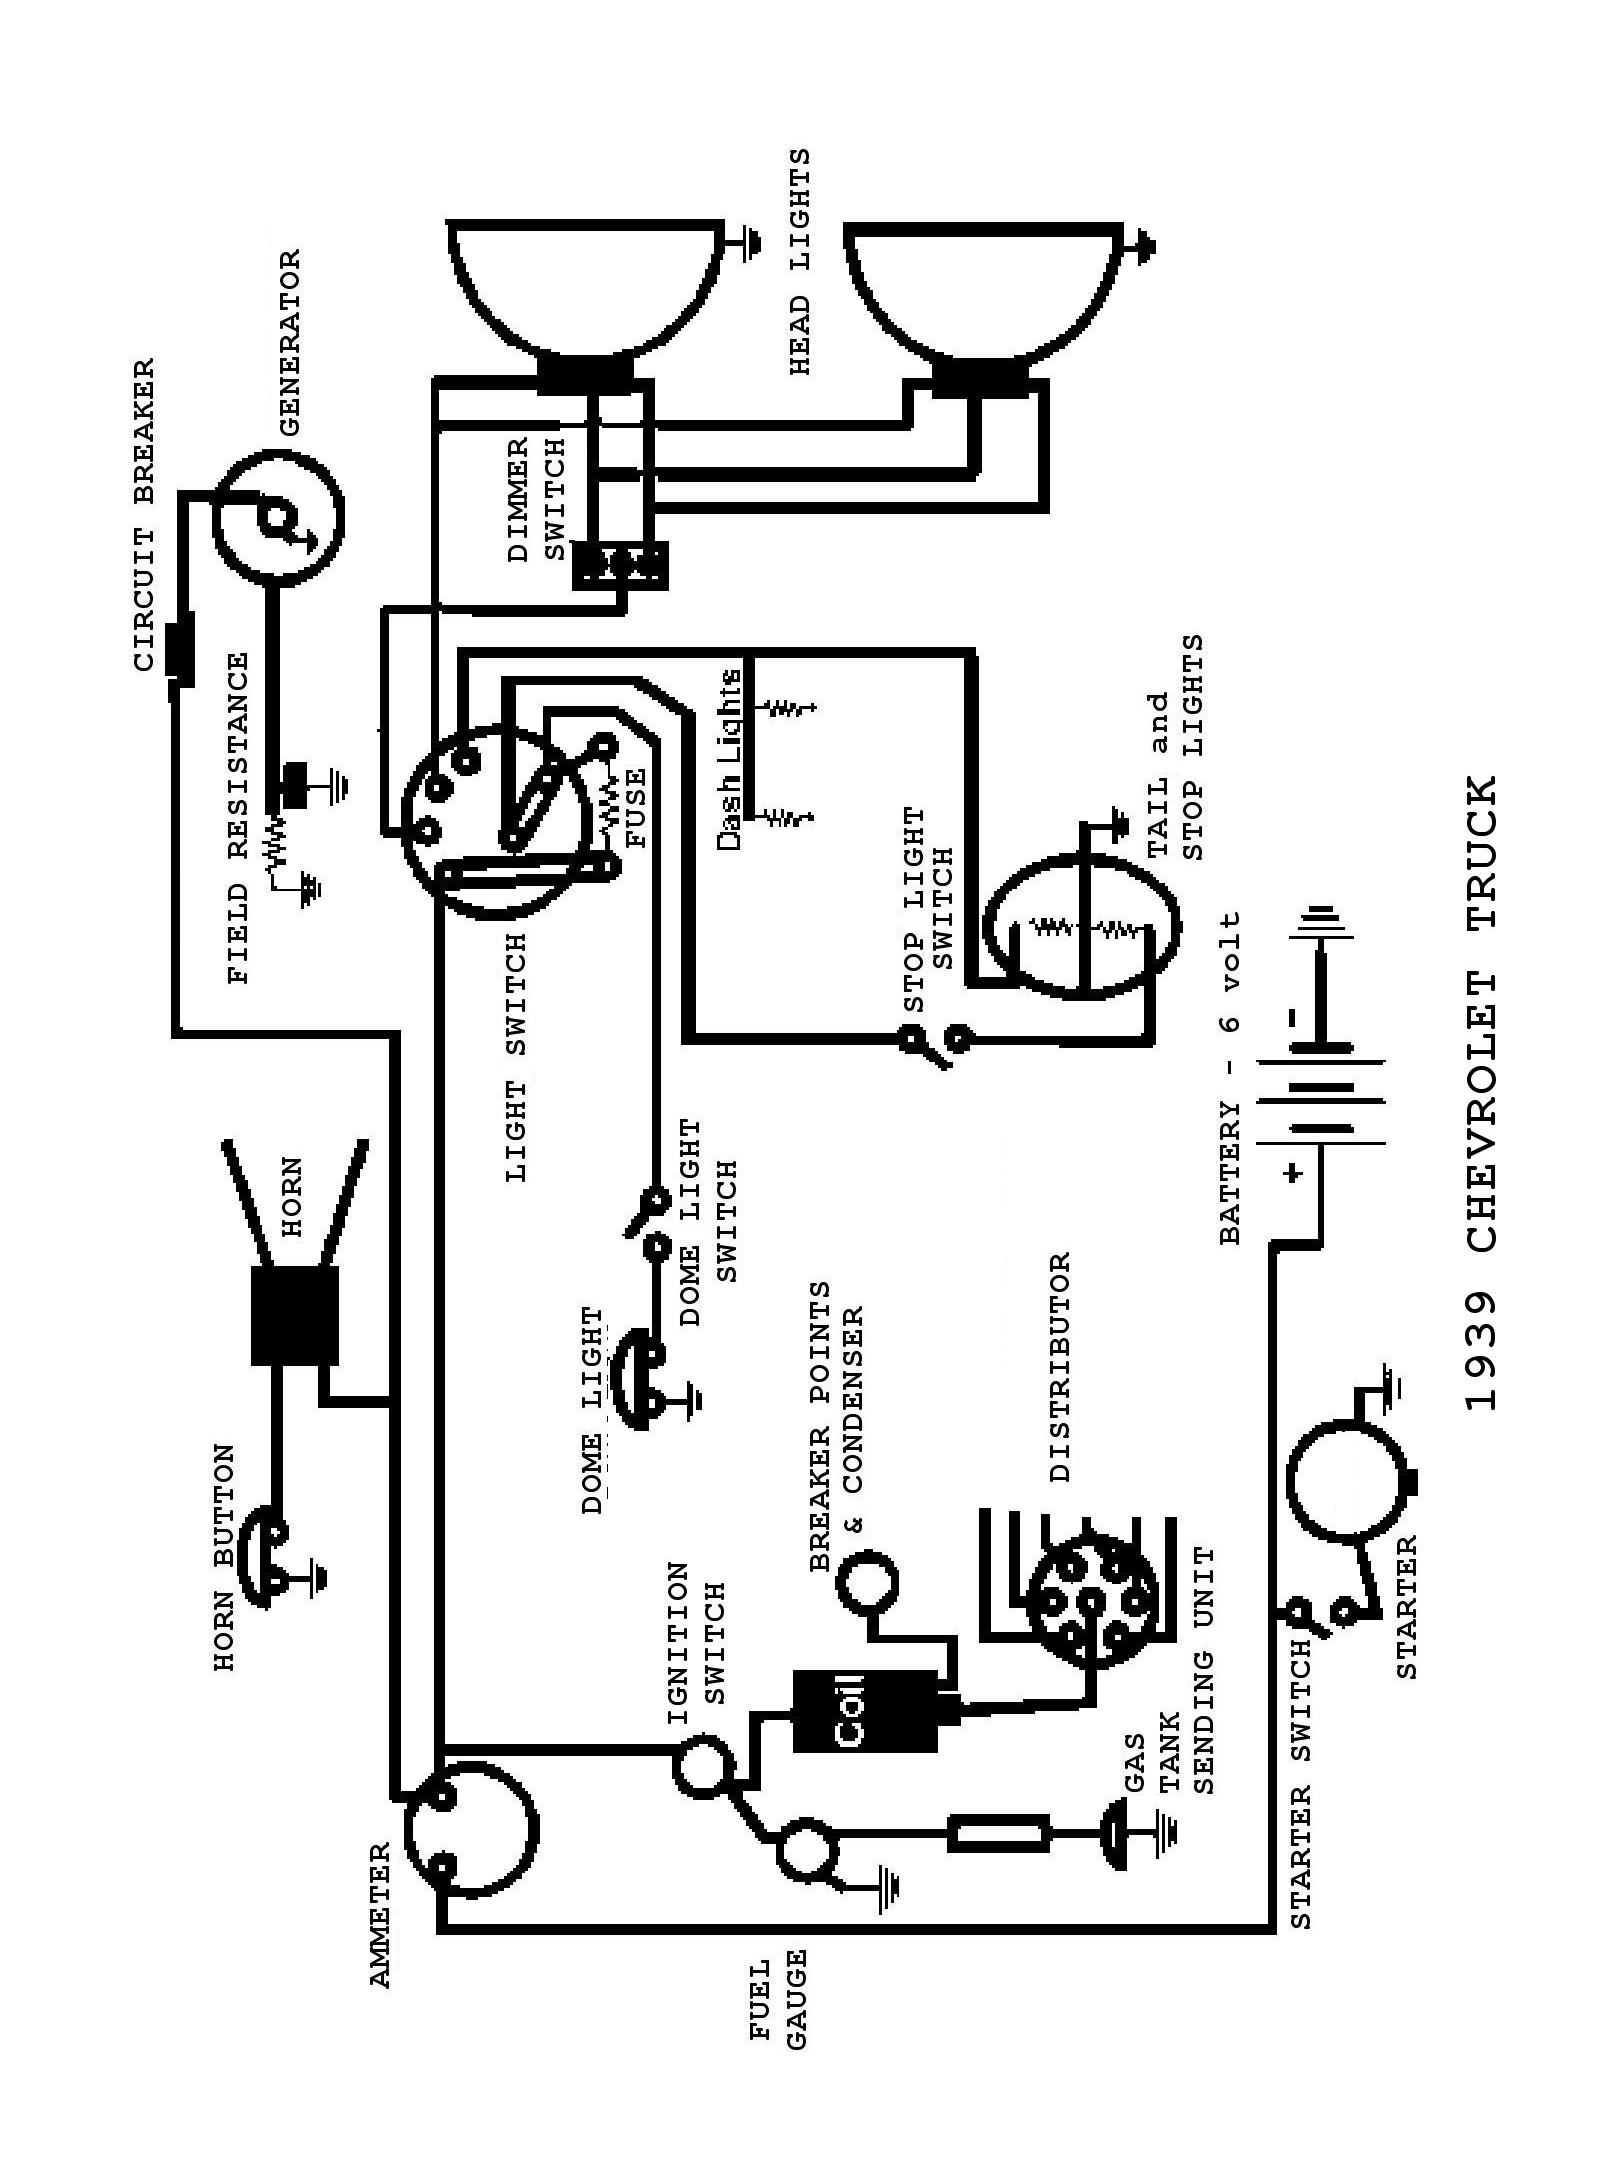 A0DB6B 1948 Ford Tractor Battery Wiring Diagram | Wiring ... on 1987 dodge ramcharger wiring diagram, 31 ford wiring diagram, 1965 oldsmobile 442 wiring diagram, 1940 ford wiring diagram, ignition wiring diagram, 1950 ford wiring diagram, 1957 ford fairlane wiring diagram, 1964 ford galaxie wiring diagram, 1973 ford mustang wiring diagram, 1932 ford wiring diagram, 1954 ford wiring diagram, 1939 ford truck wiring diagram, 1964 impala ss wiring diagram, 1967 pontiac firebird wiring diagram, 1955 ford thunderbird wiring diagram, 1962 chevy impala wiring diagram, 1937 ford wiring diagram, 1956 ford wiring diagram, 1938 ford wiring diagram, 1966 mustang wiring diagram,